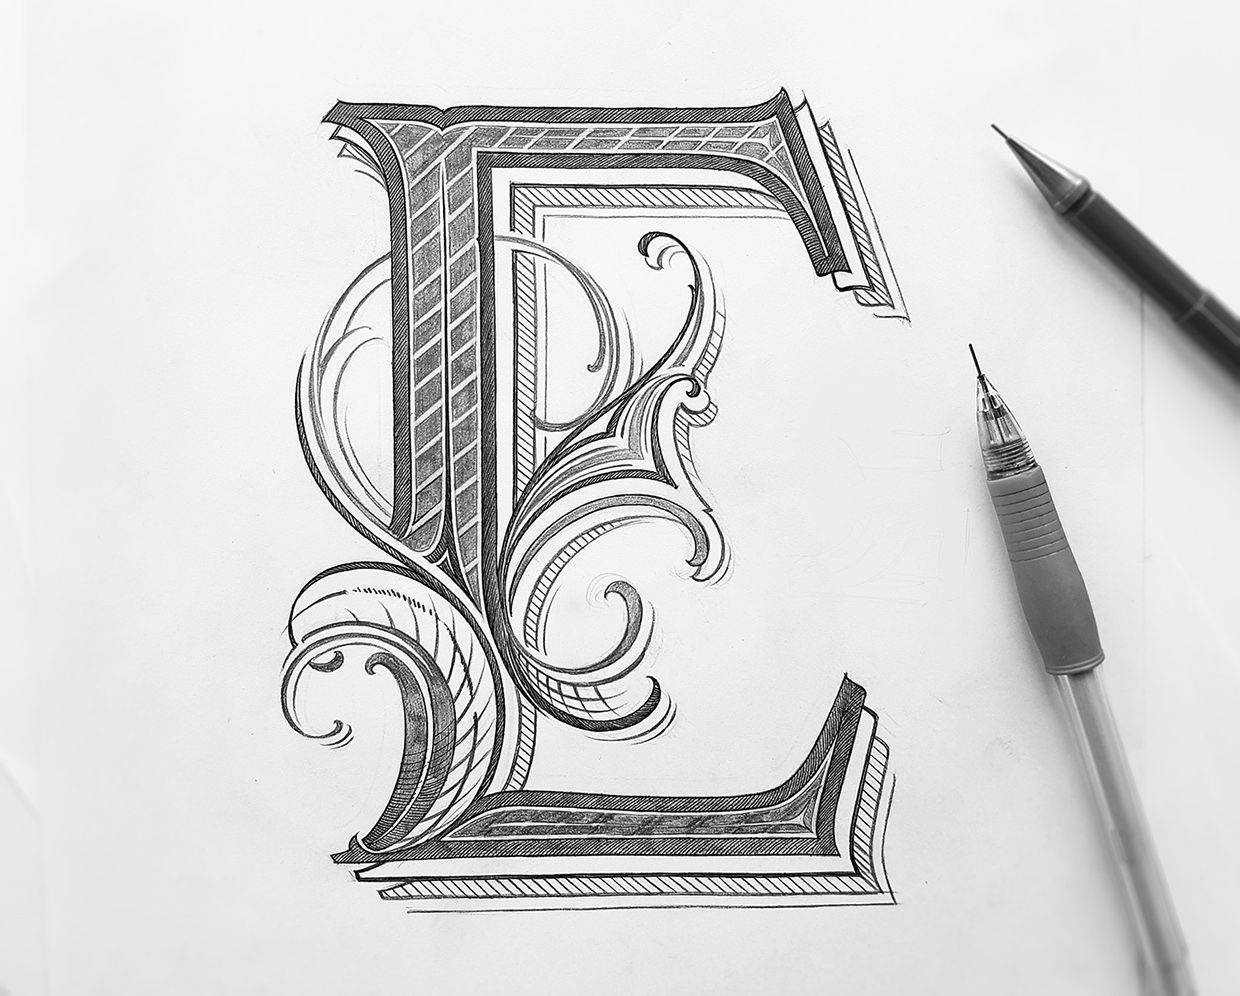 21++ Letter design ideas drawing inspirations